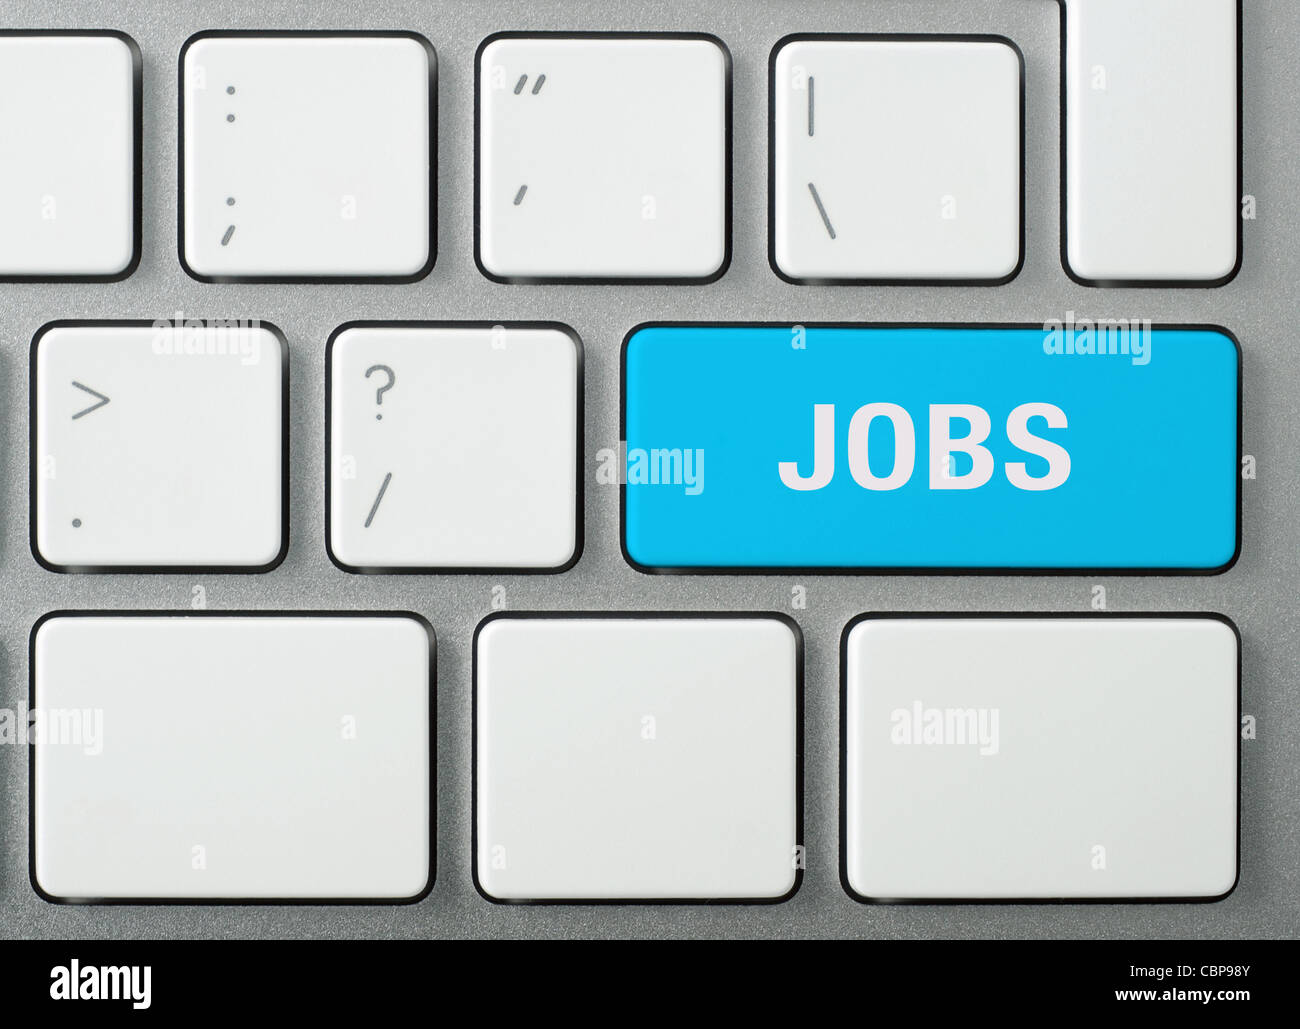 Job search. Laptop keyboard and blue key 'JOBS' on it. Studio shot. - Stock Image